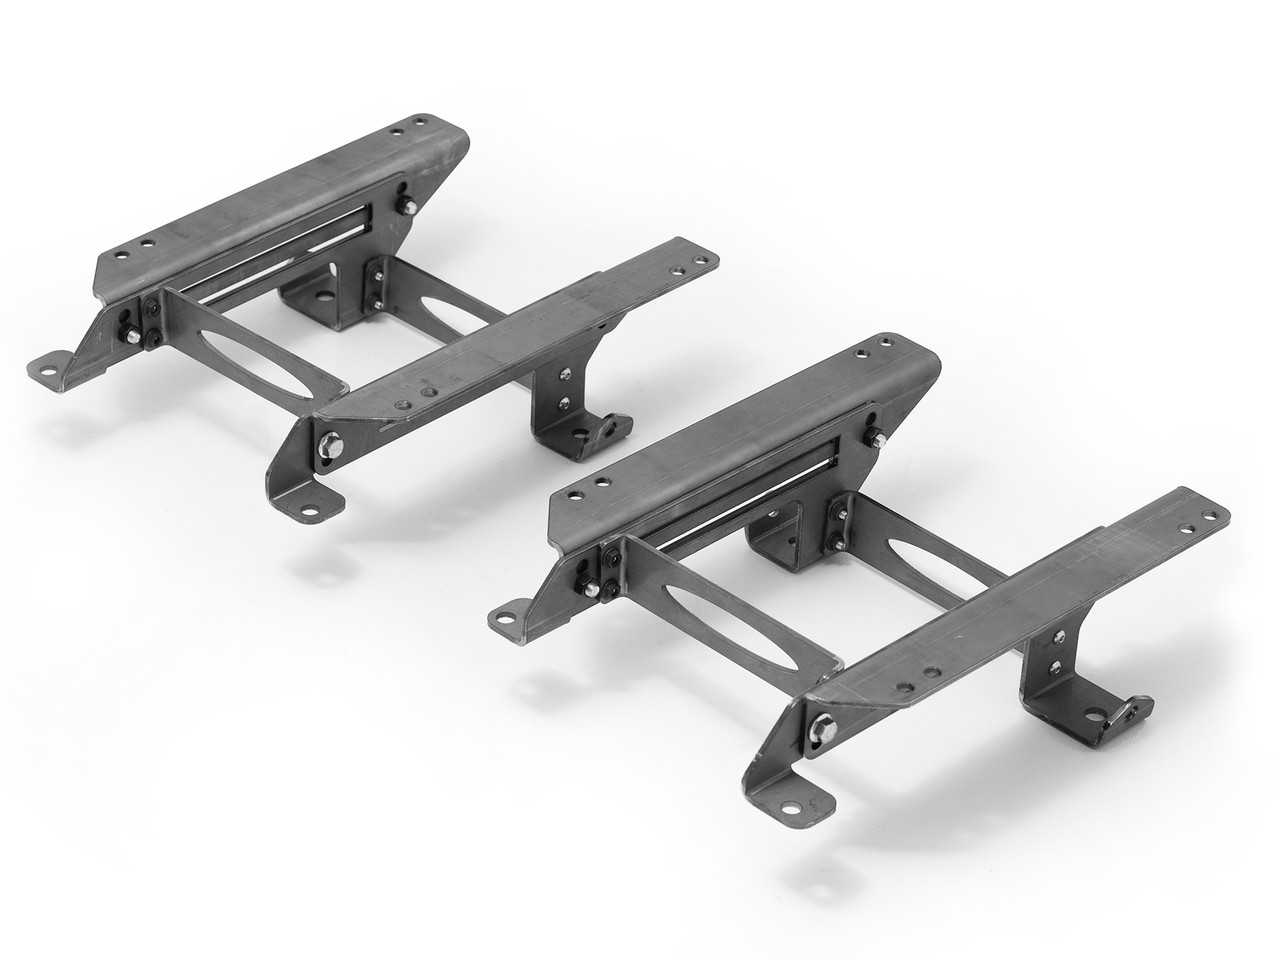 BKT-5800 Adjustable Height & Angle Seat Mounts for the Jeep TJ or LJ